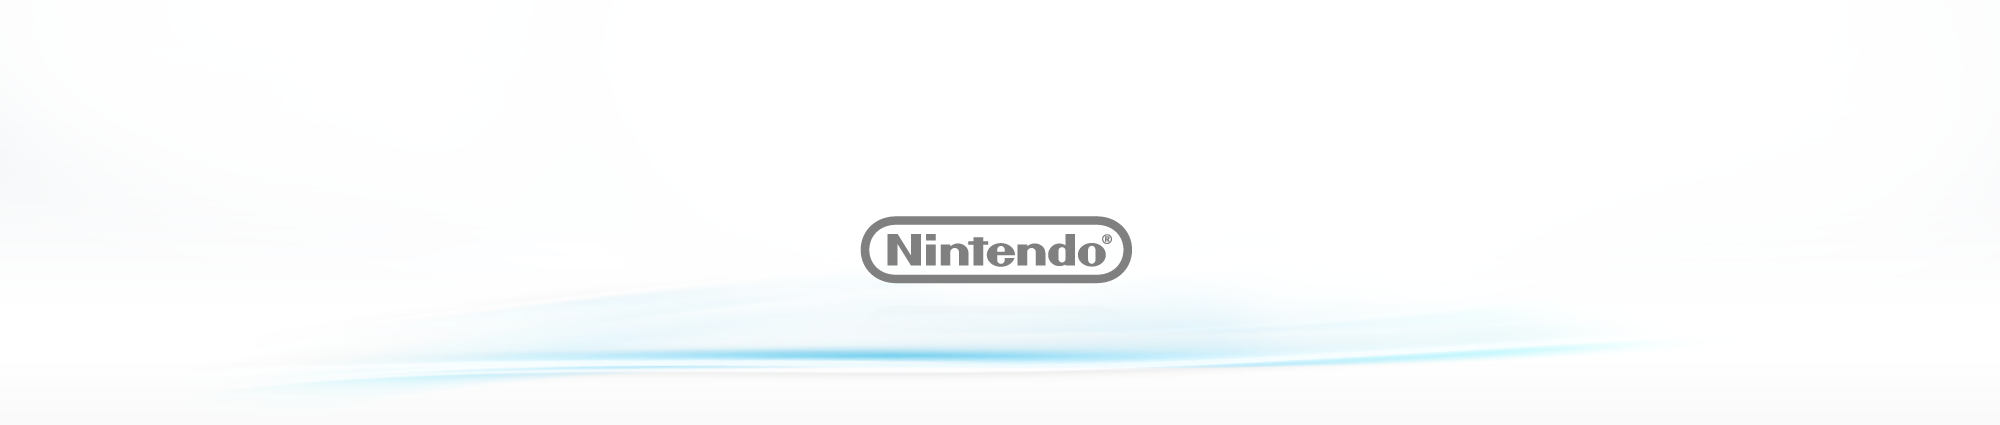 I am not receiving promotional emails related to my Nintendo Account. What should I do?